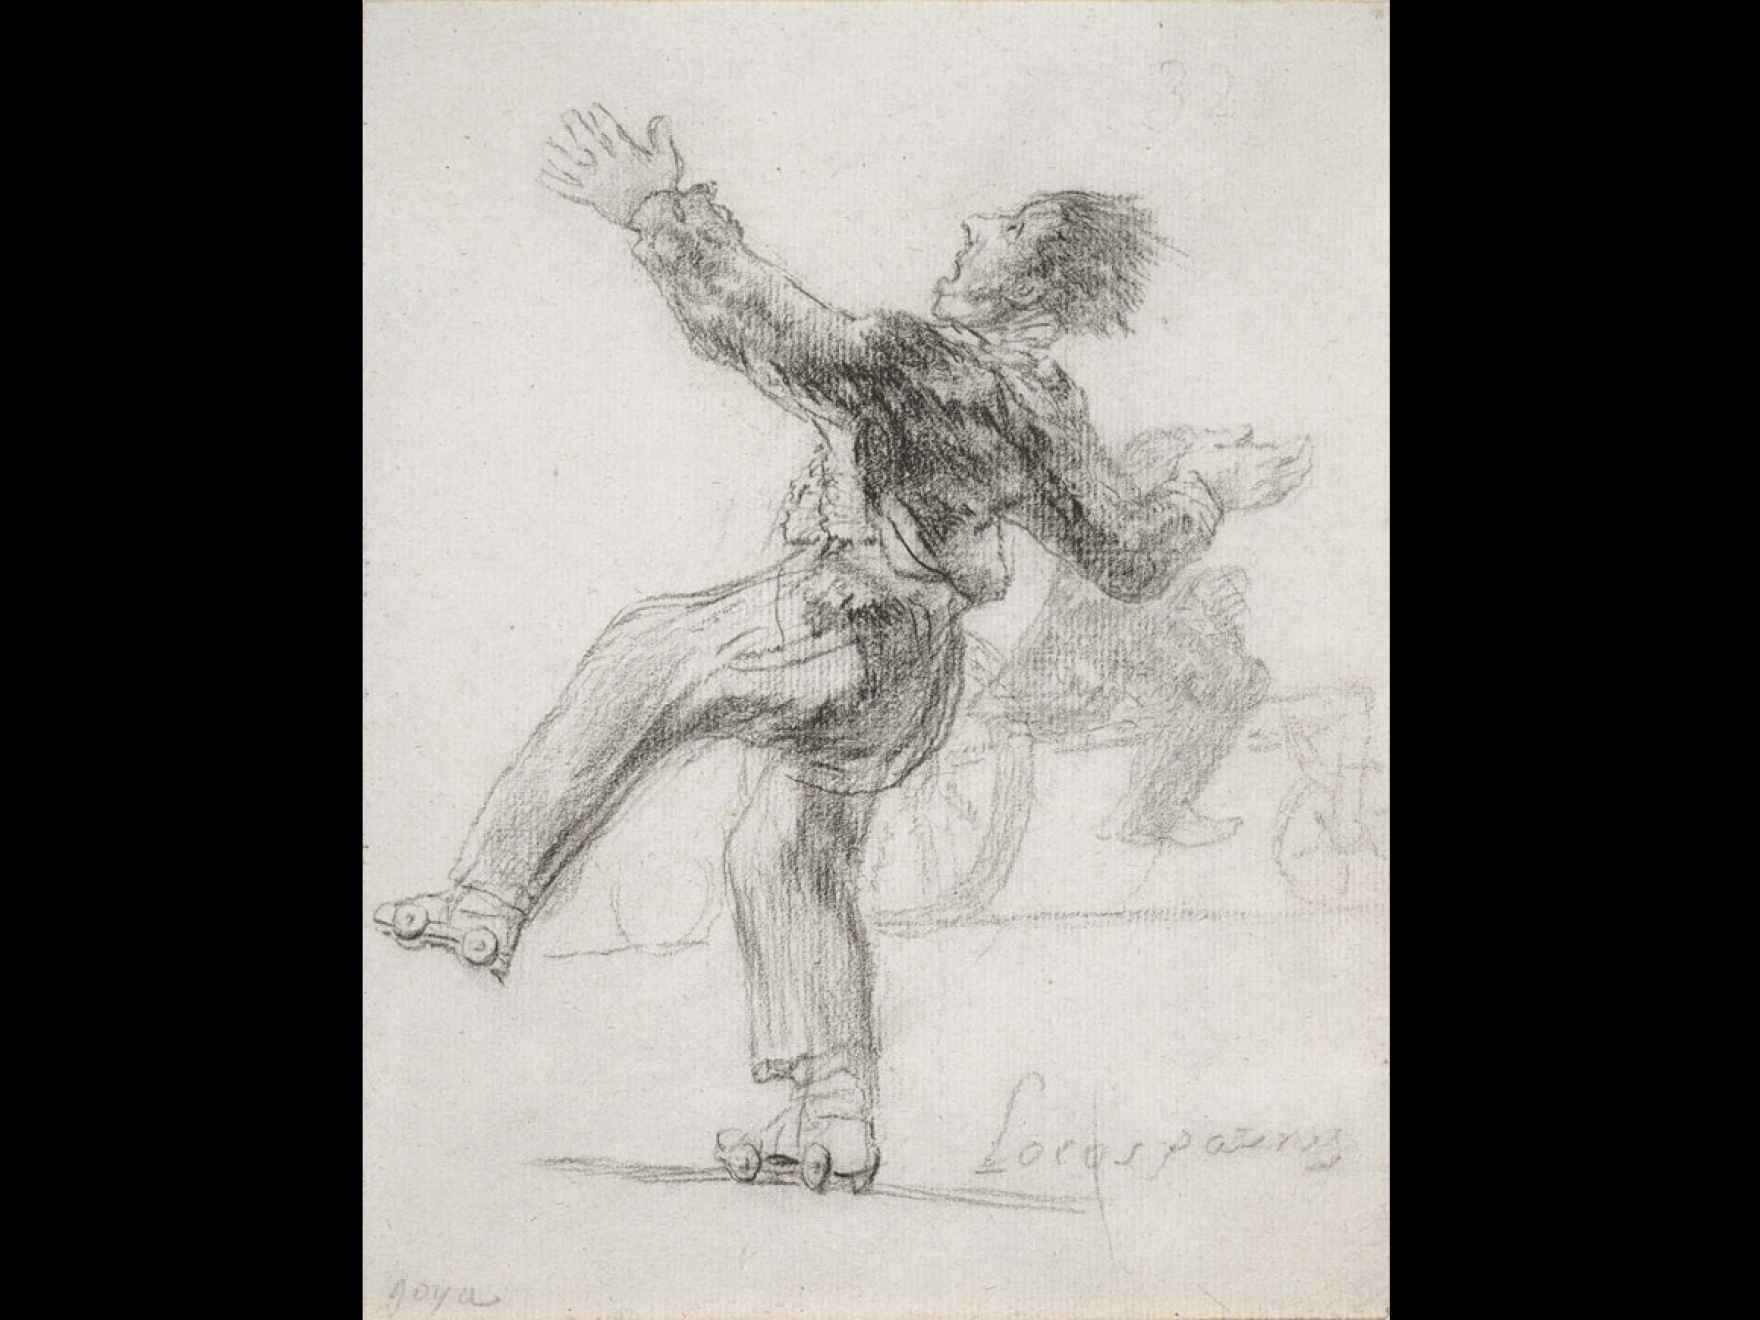 Print in black crayon on Prussian blue laid paper of a man loosing his balance on skates and is about to fall